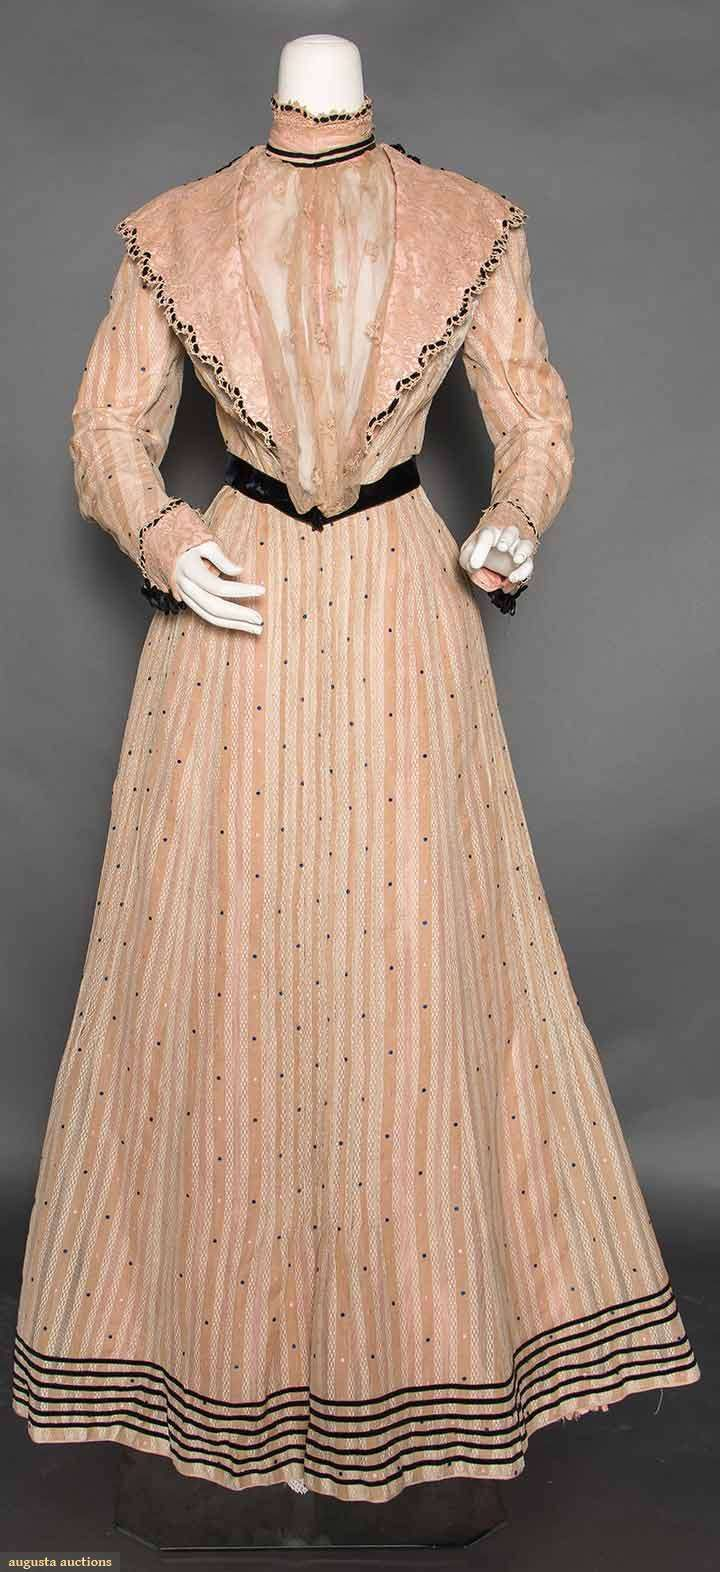 249 best images about 1900's on Pinterest | Day dresses ...